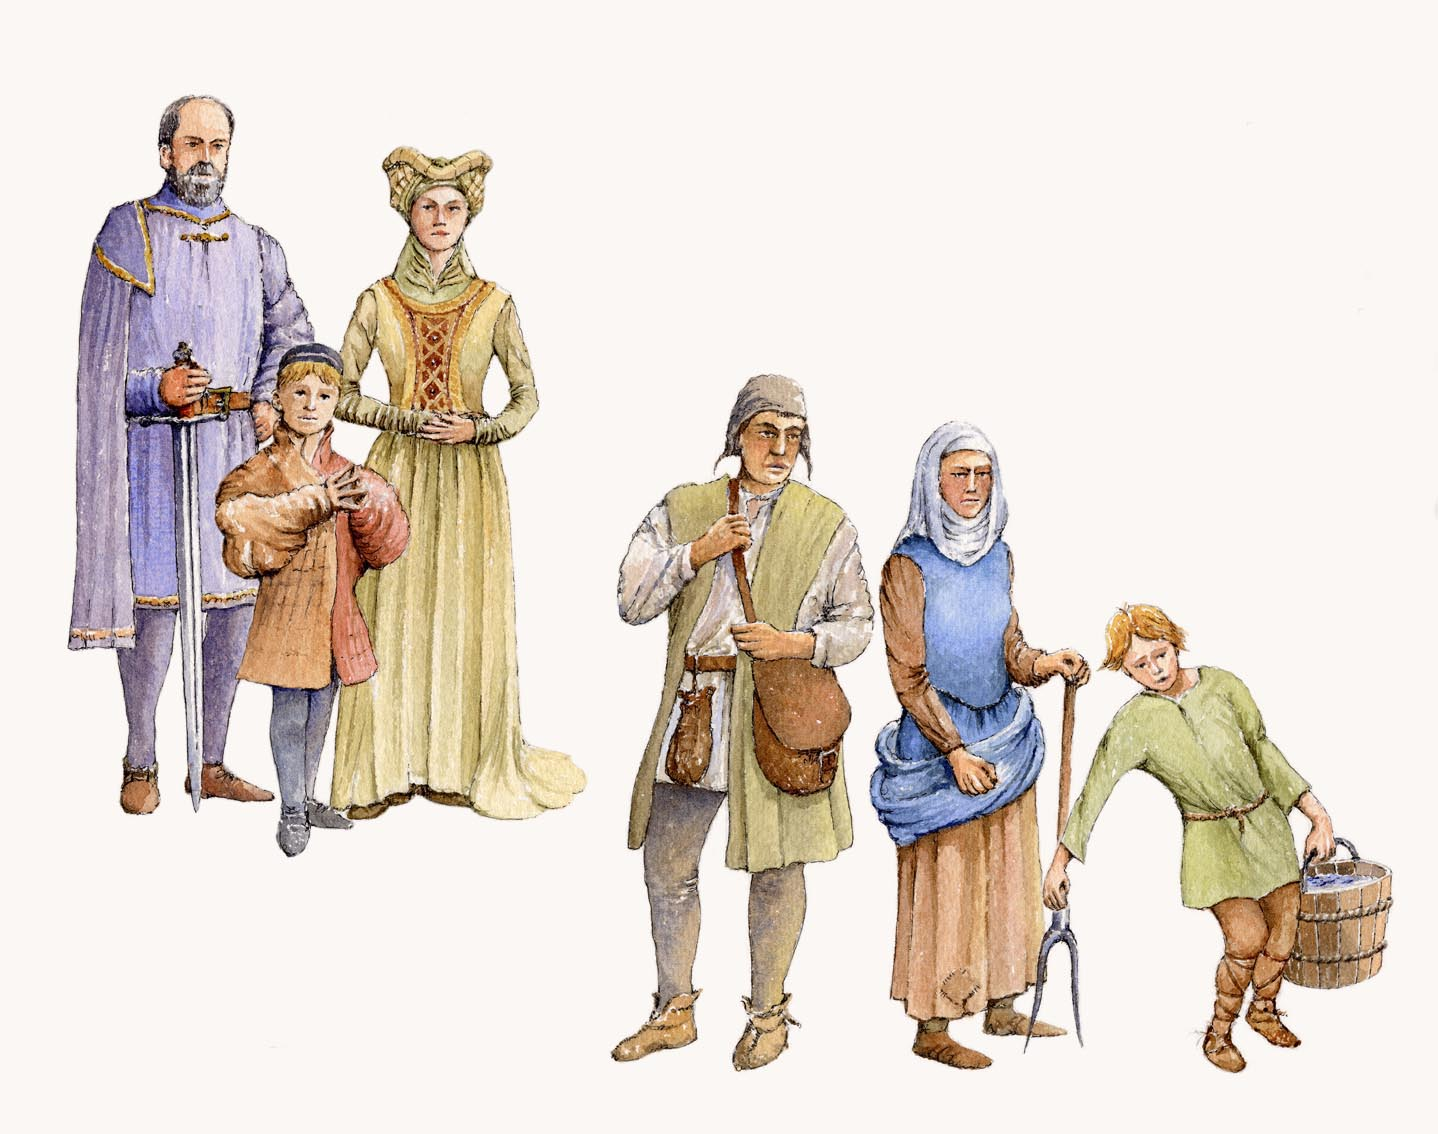 Maiden clipart medieval serf Ages ages zoeken clothing Google